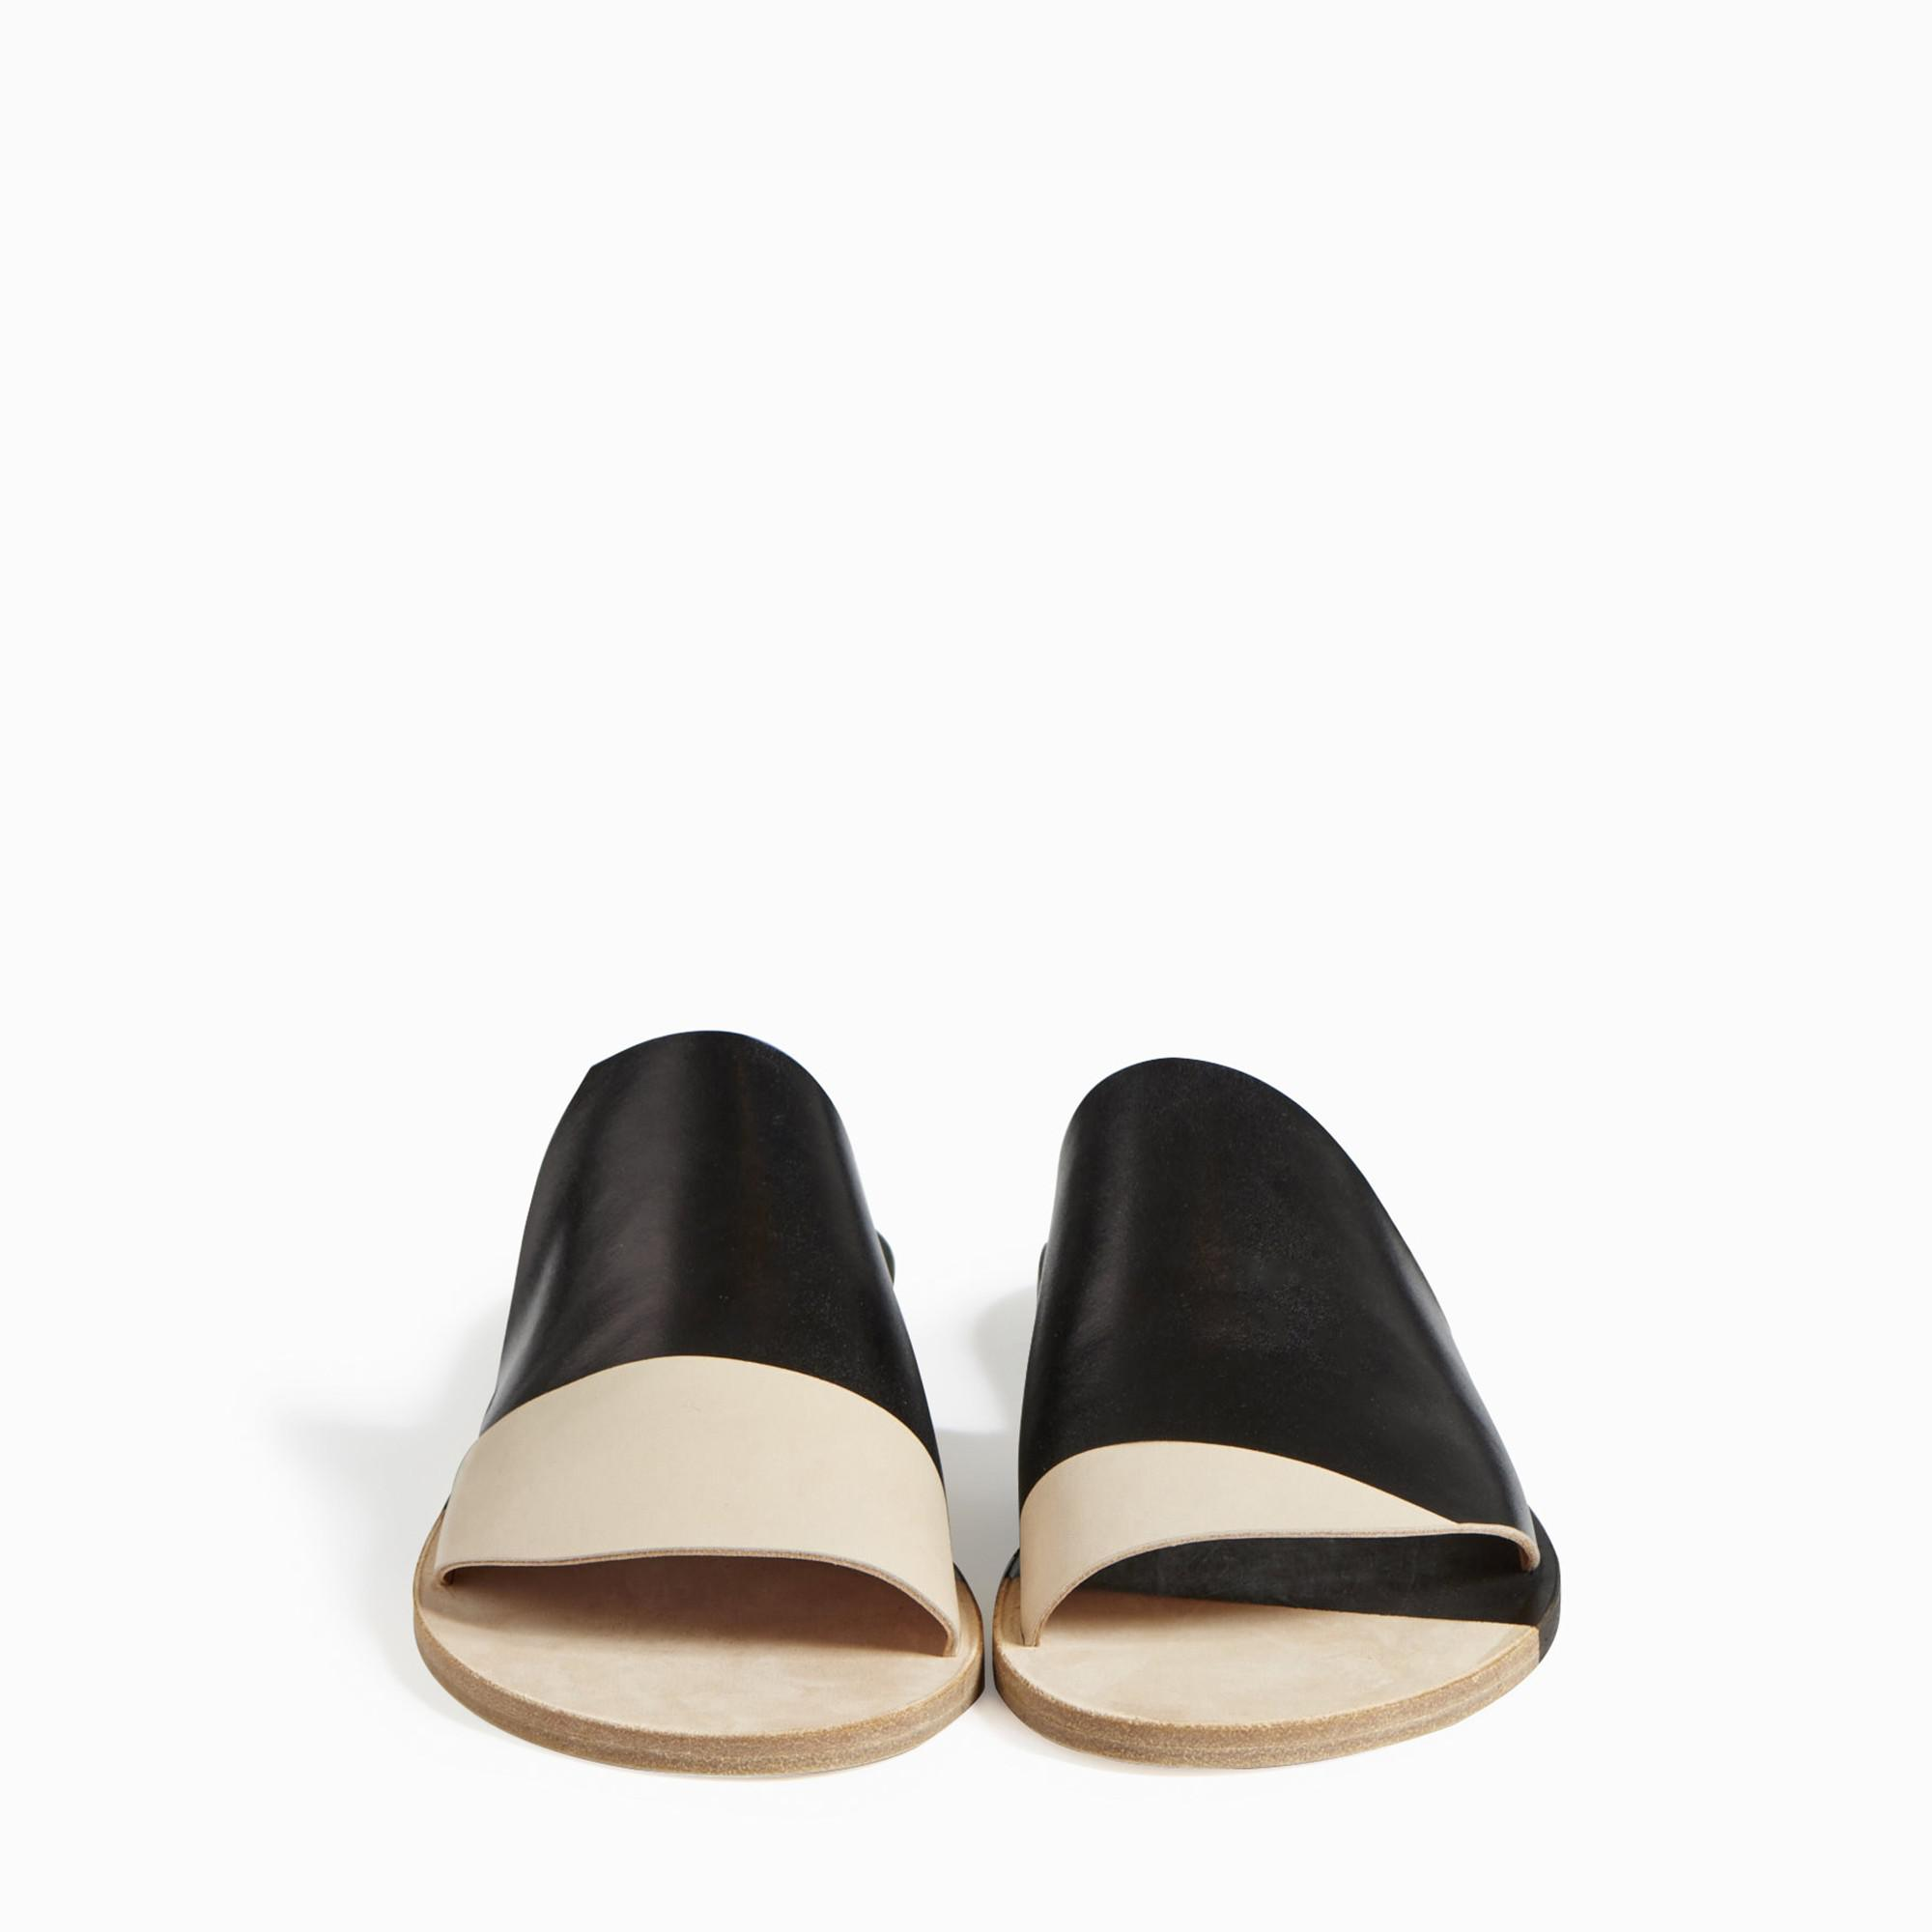 Pierre Hardy Diagonal sandals buy cheap pictures comfortable cheap price for sale cheap online free shipping outlet store free shipping fashion Style 3akRX2M1gg